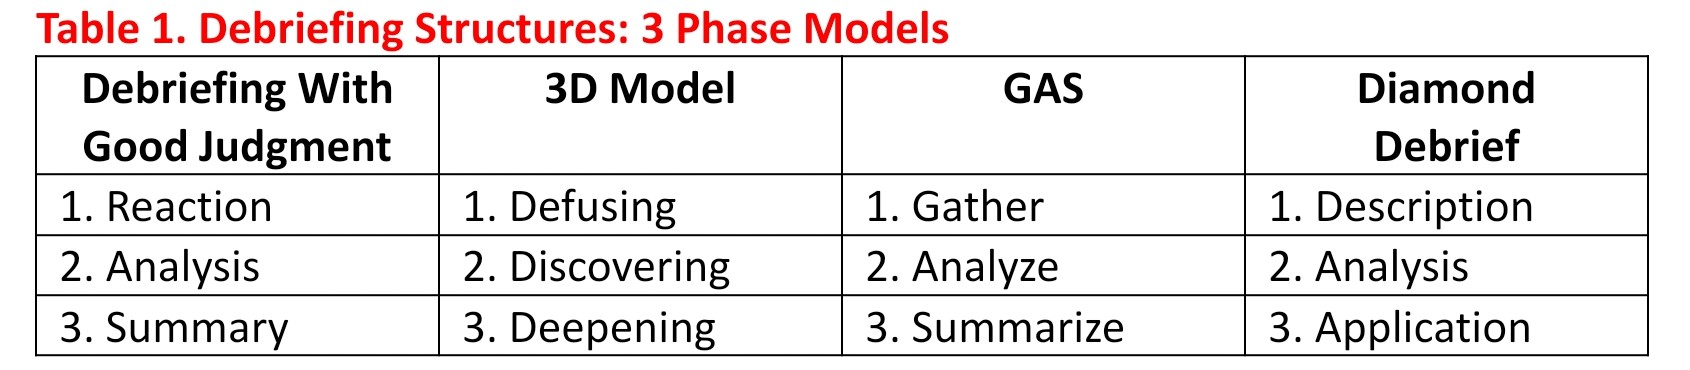 Table 1 Debriefing Structures : 3 phase model